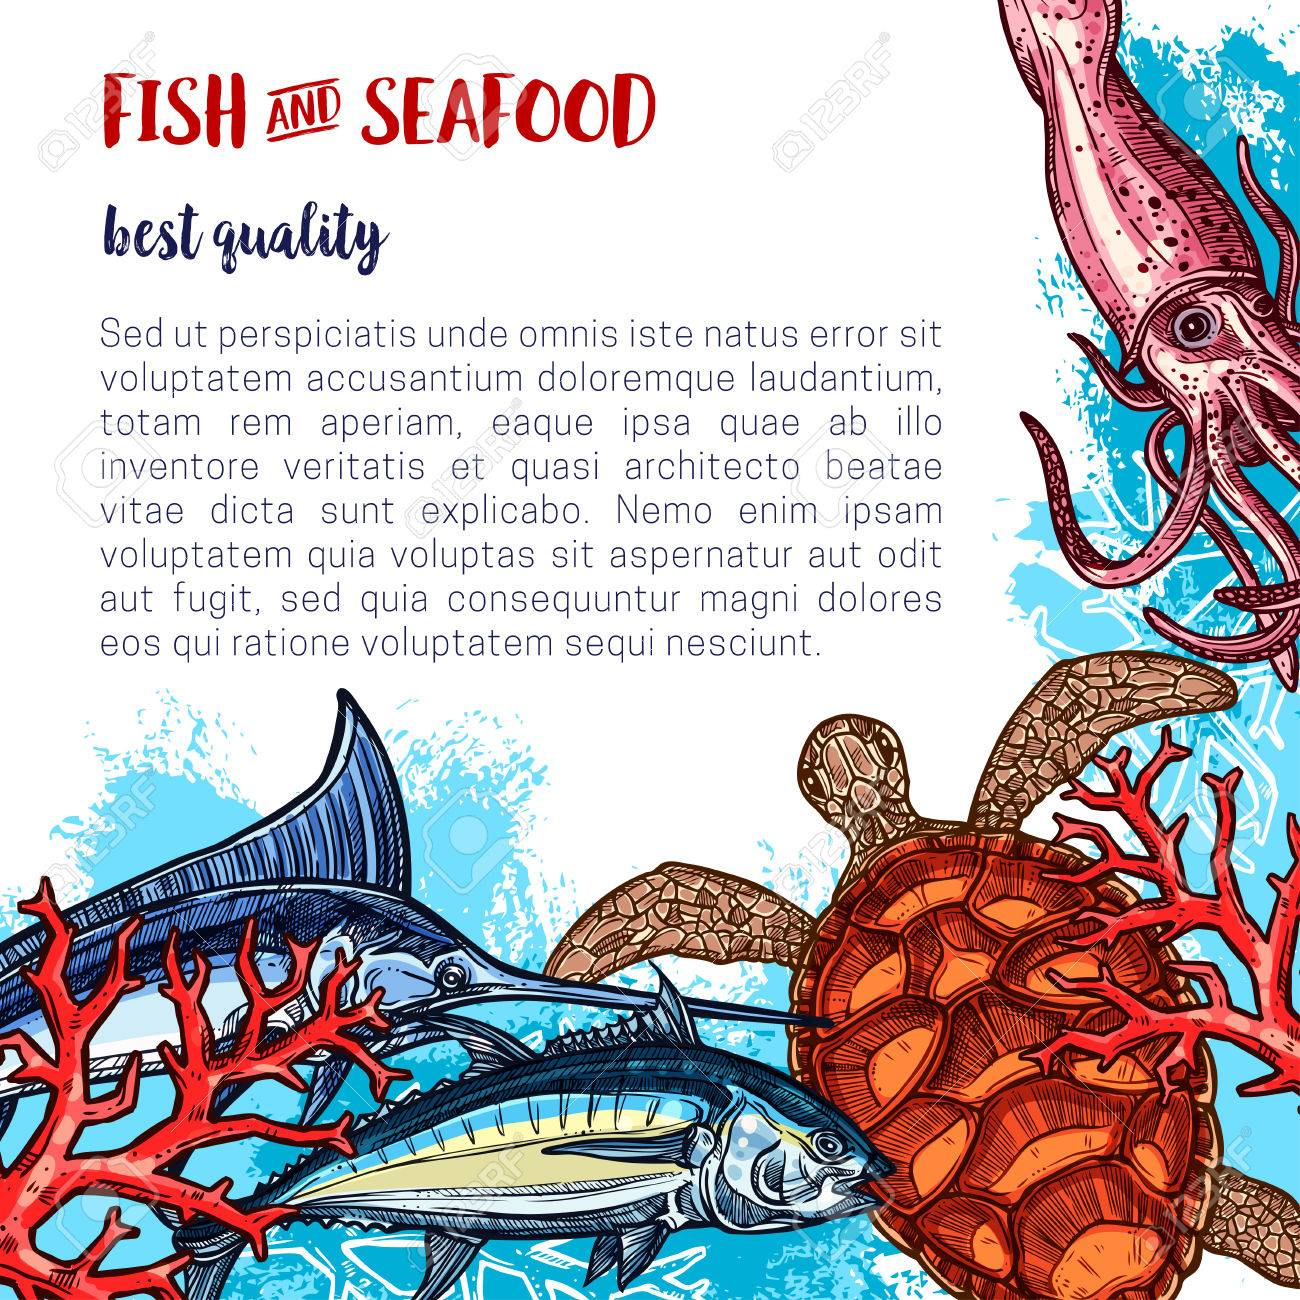 Fresh Seafood Poster For Fish Or Sea Food Market Or Restaurant Royalty Free Cliparts Vectors And Stock Illustration Image 82097679